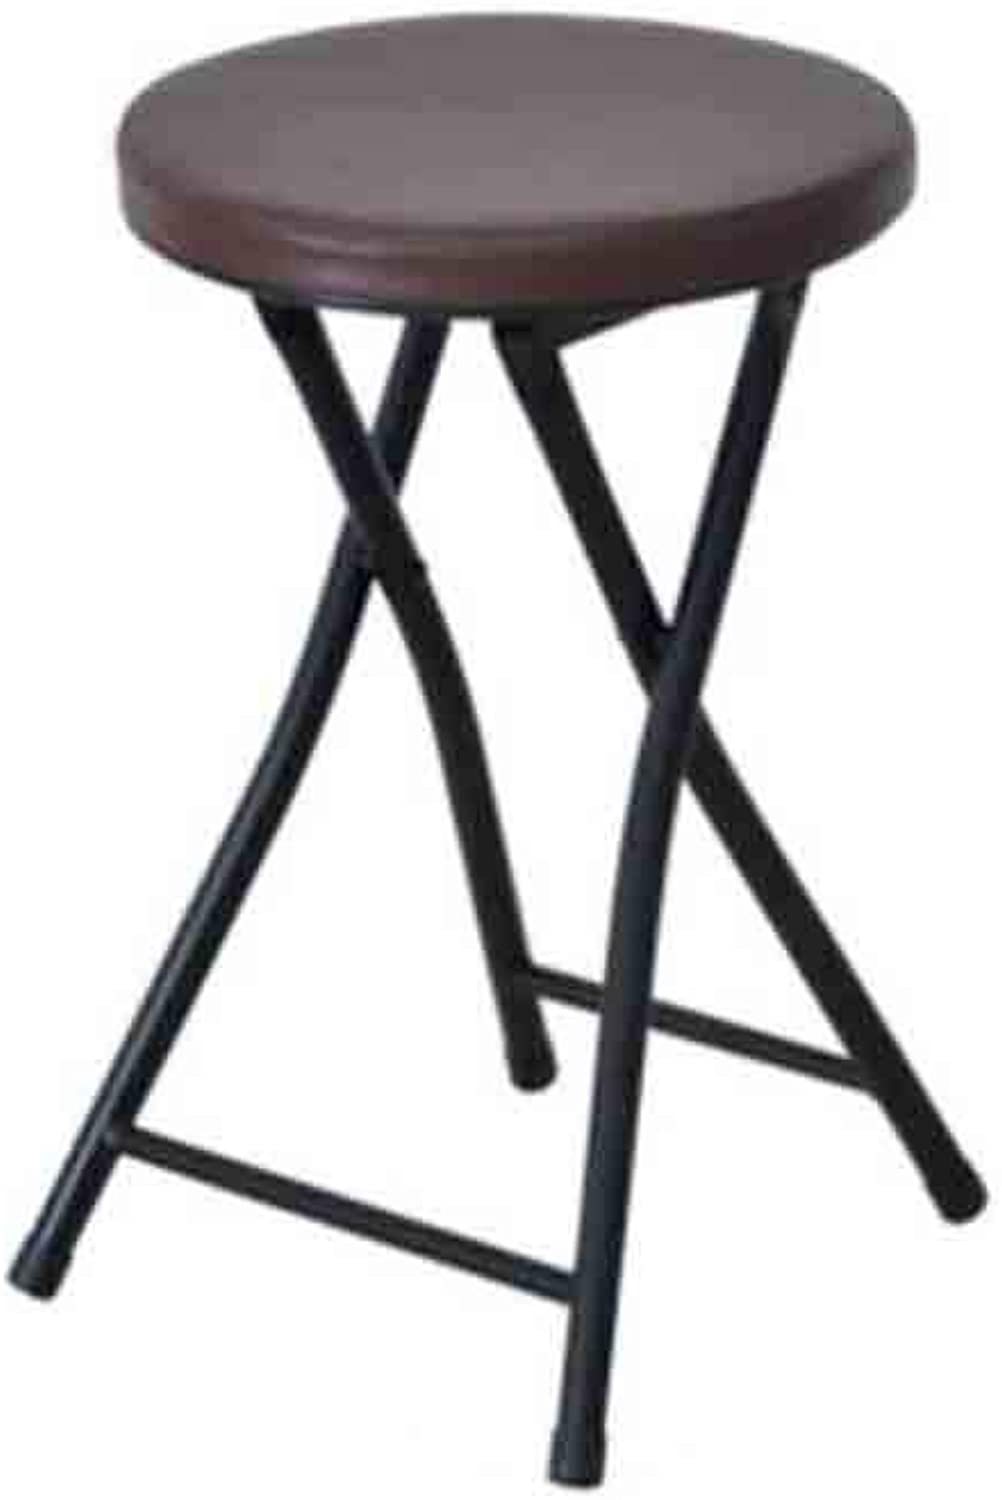 YCSD Round Shaped Compact Folding Stool with Chrome Frame, 49x 30 X 30 cm - 4 colors (color   Coffee color)